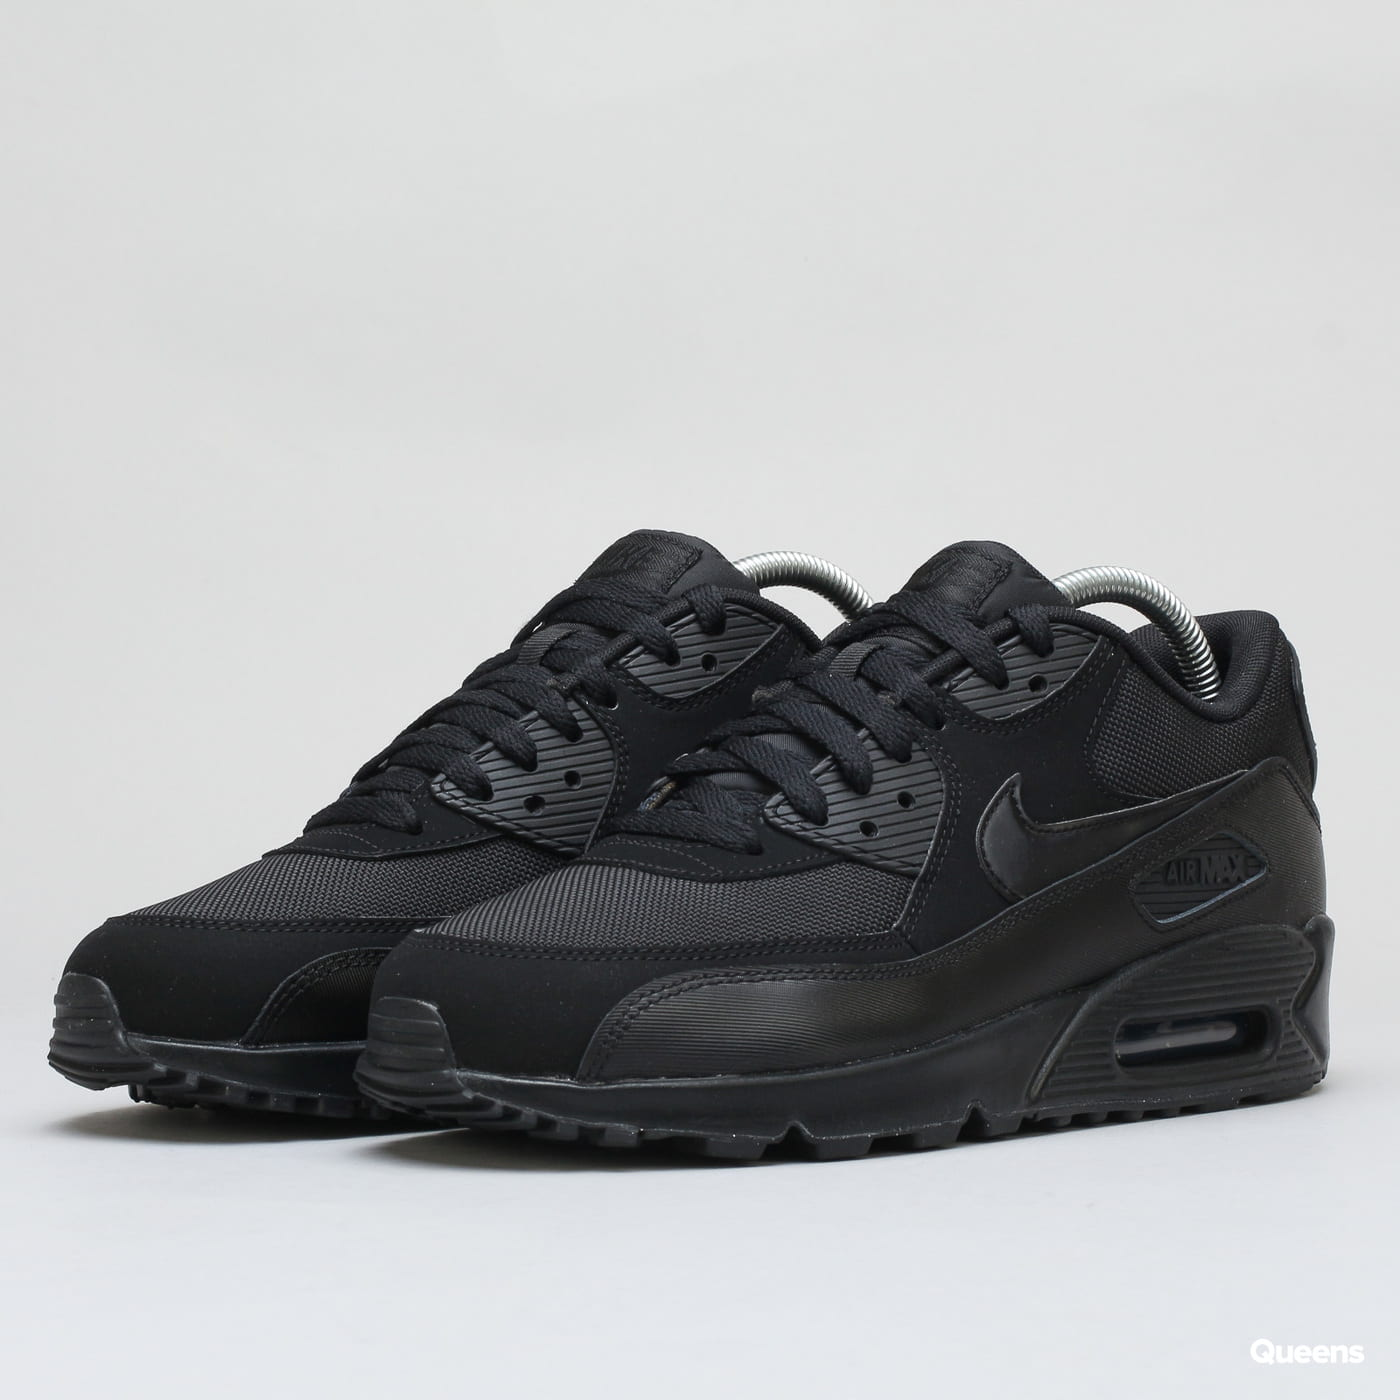 a2125485452c0 Obuv Nike Air Max 90 Essential black / black - black - black (537384-090) –  Queens 💚